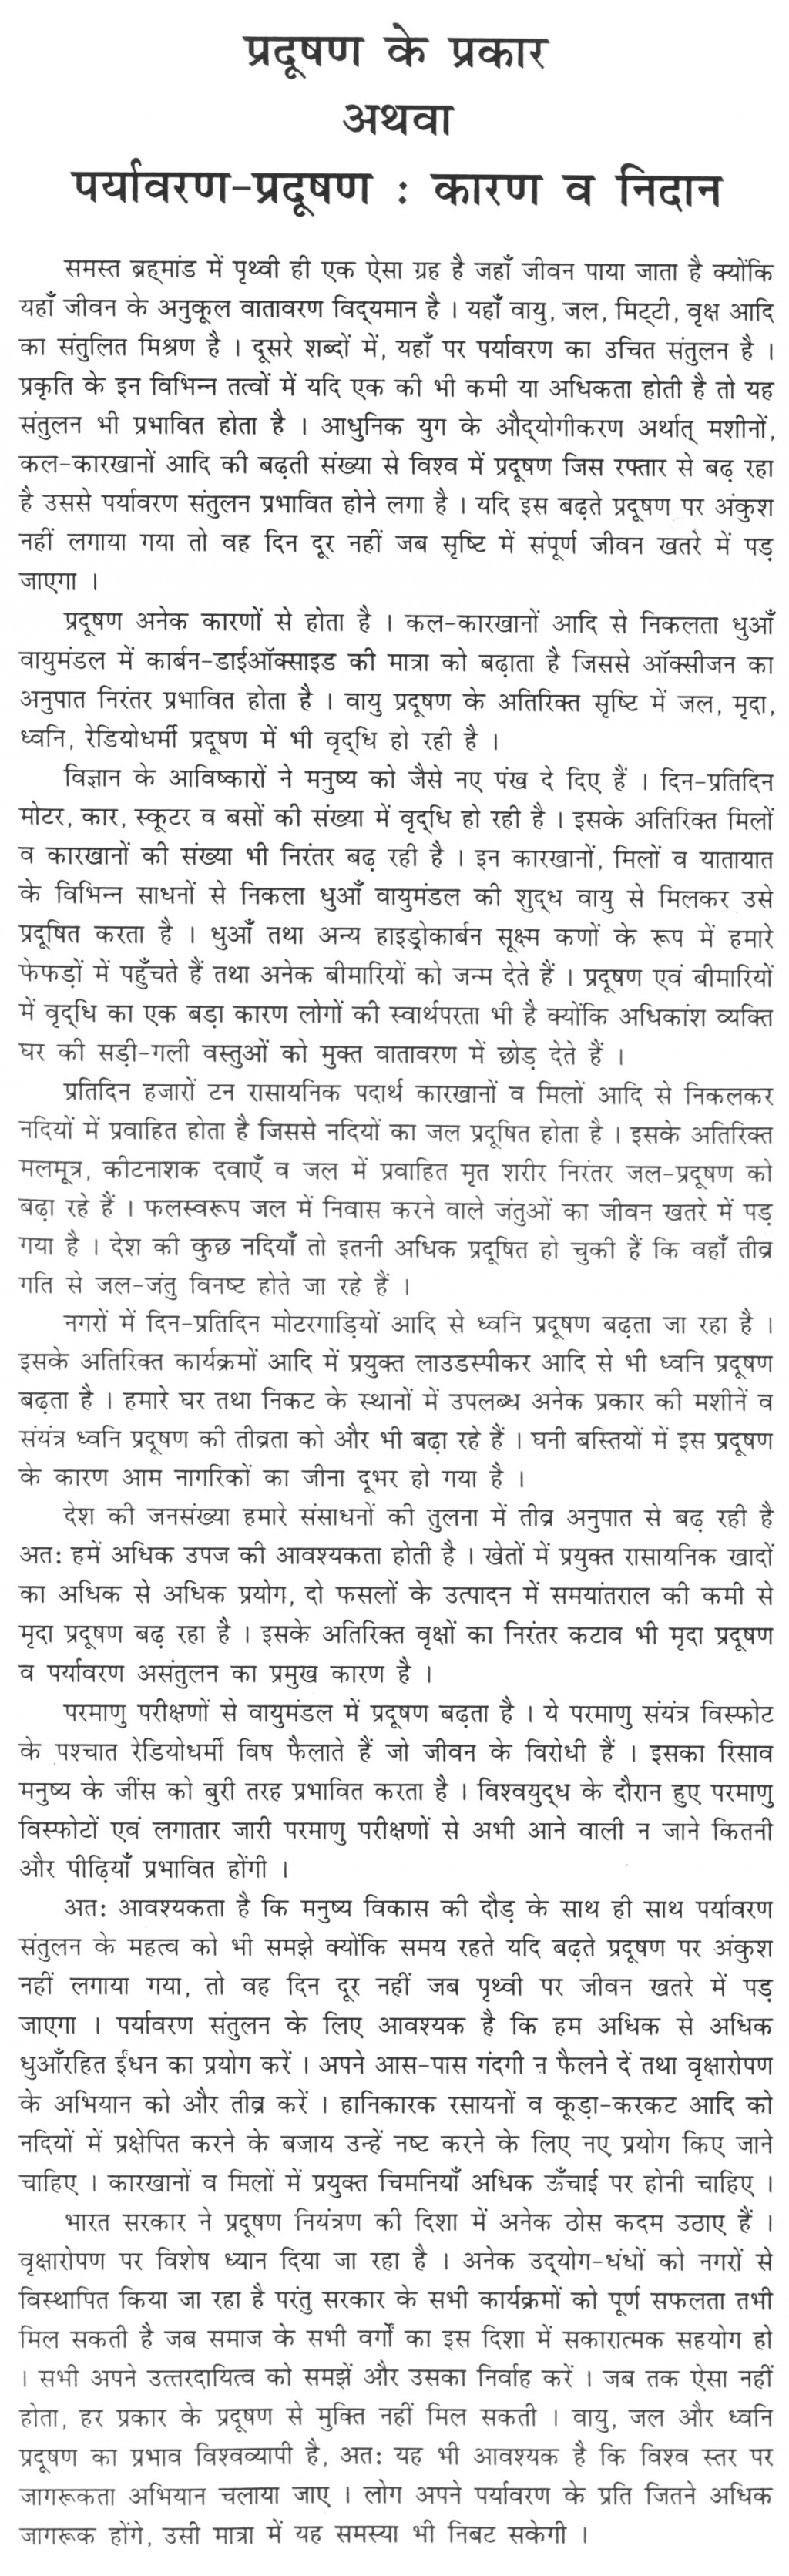 014 Good Habits Essay In Hindi Exceptional Food Habit Large